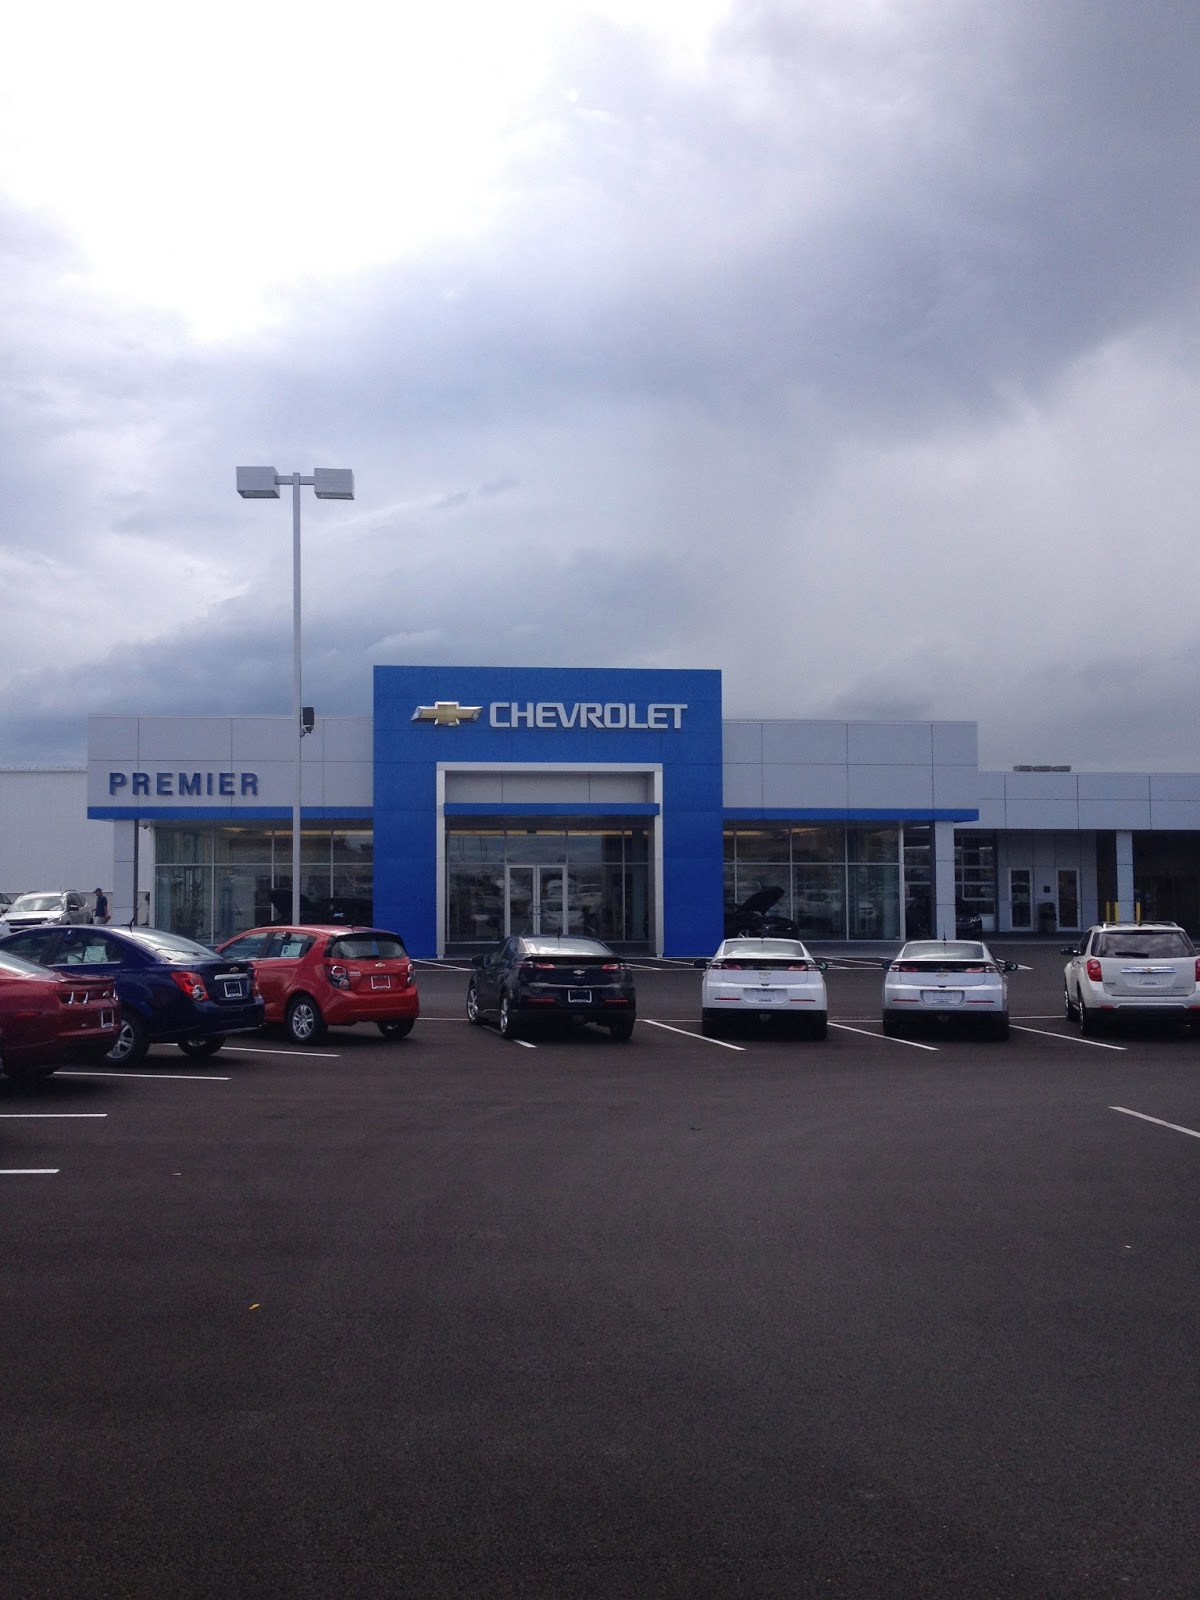 Auto Dealerships USA  Premier Automotive Group at University Town     Yep  there s a new dealership in town  Actually it s a dealership in a new  location  Premier Automotive Group  which sells Chevrolet  GMC